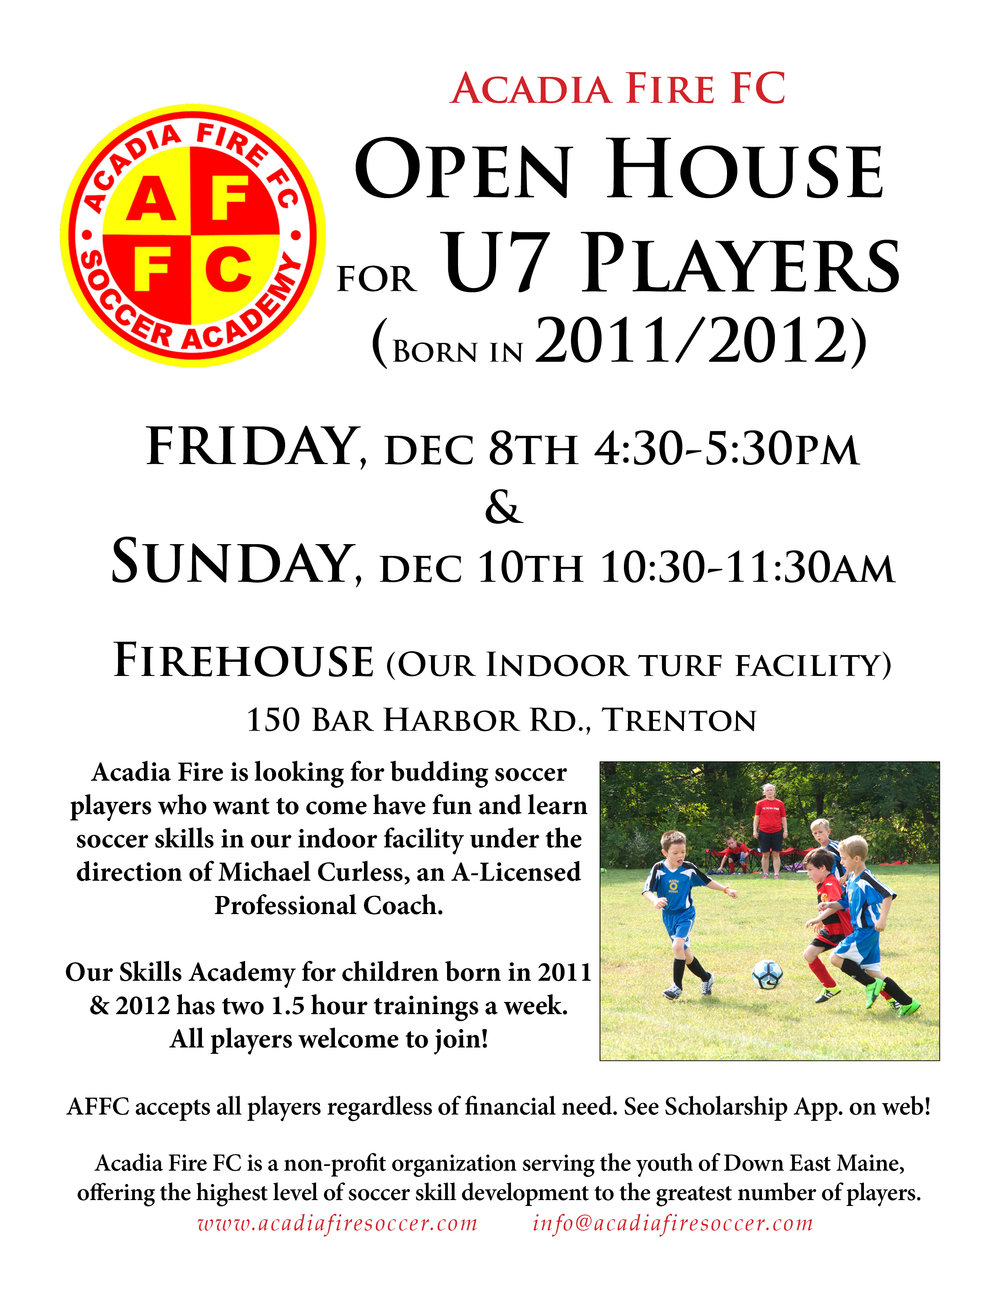 U7 Open House Flyer outside photo.jpg